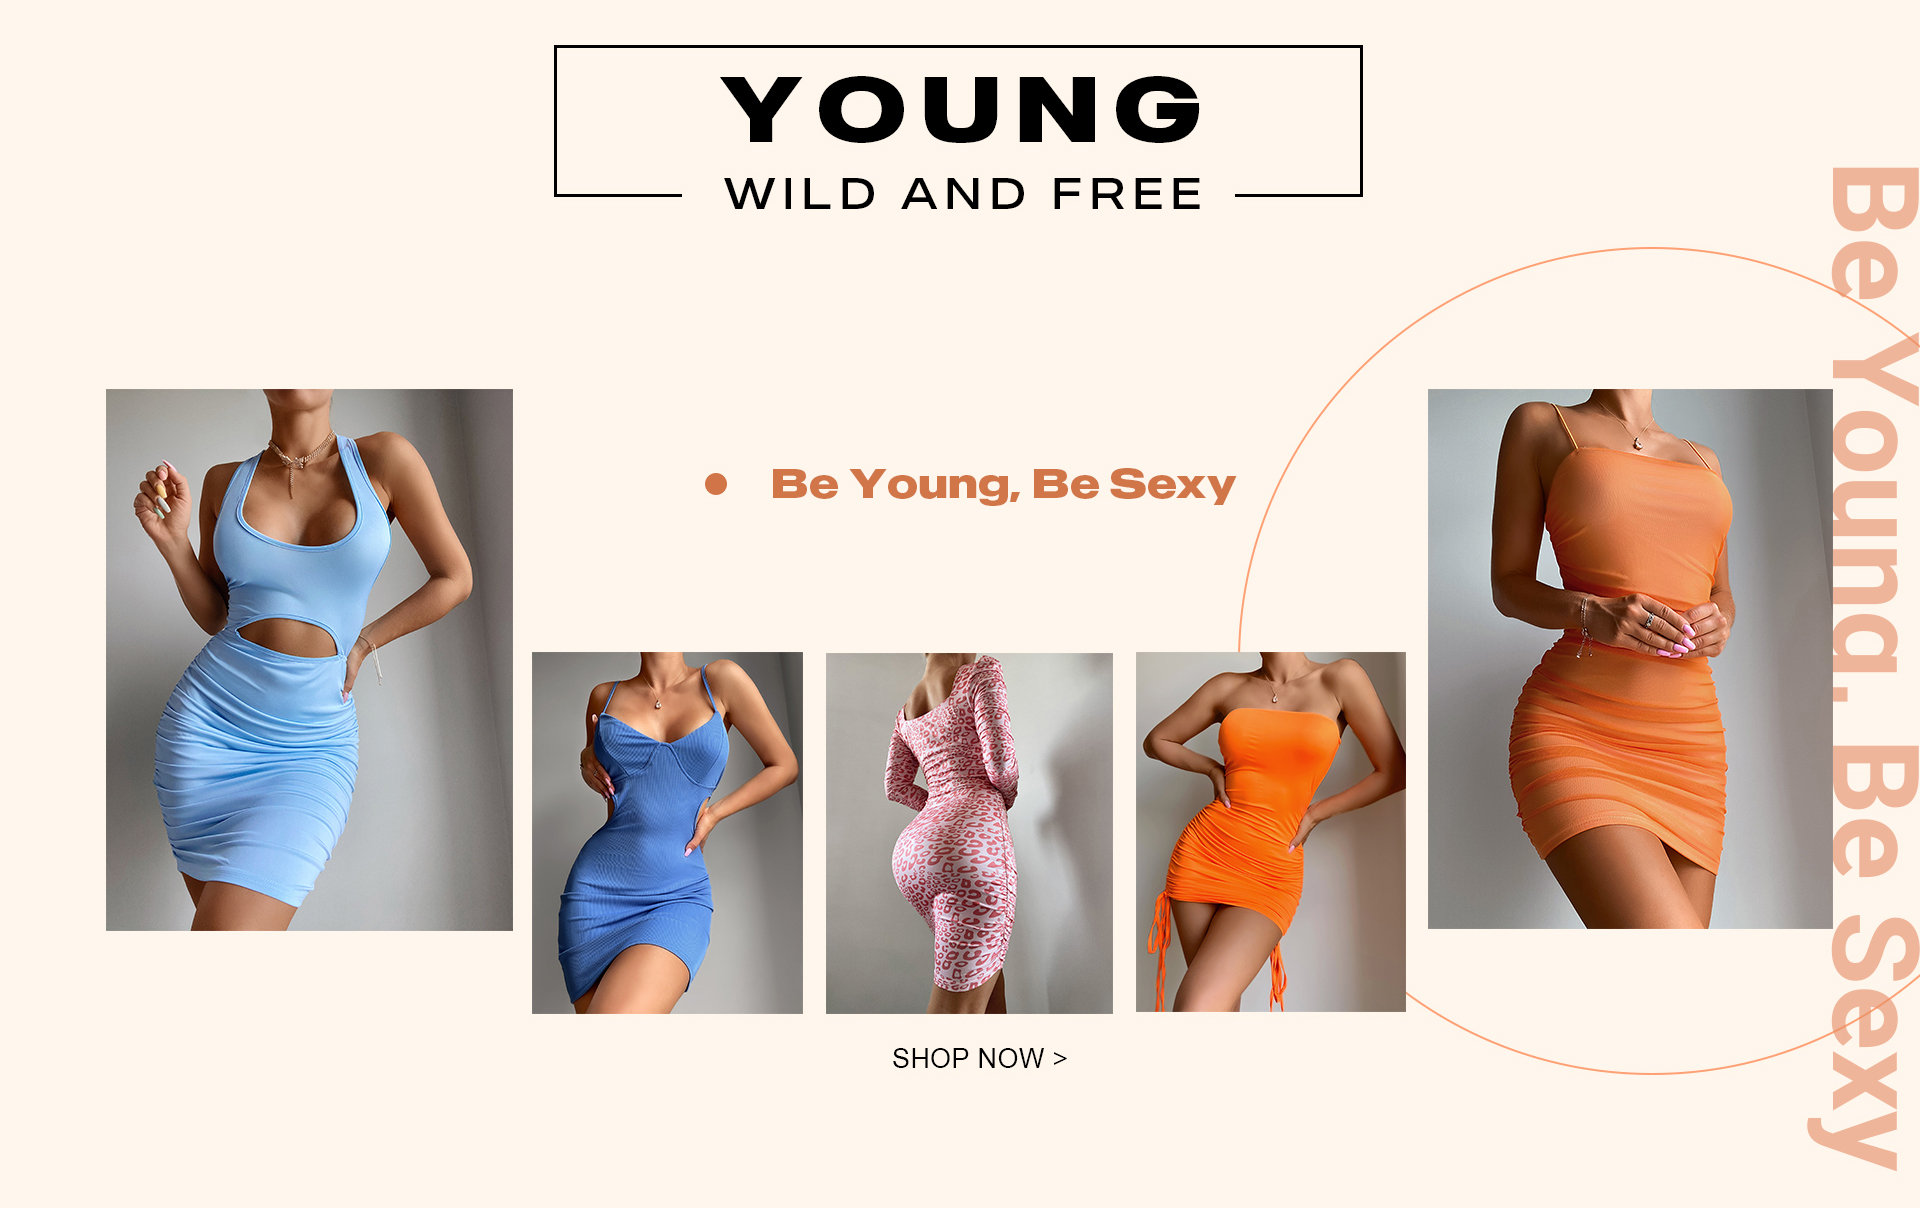 Be Young,Be Sexy